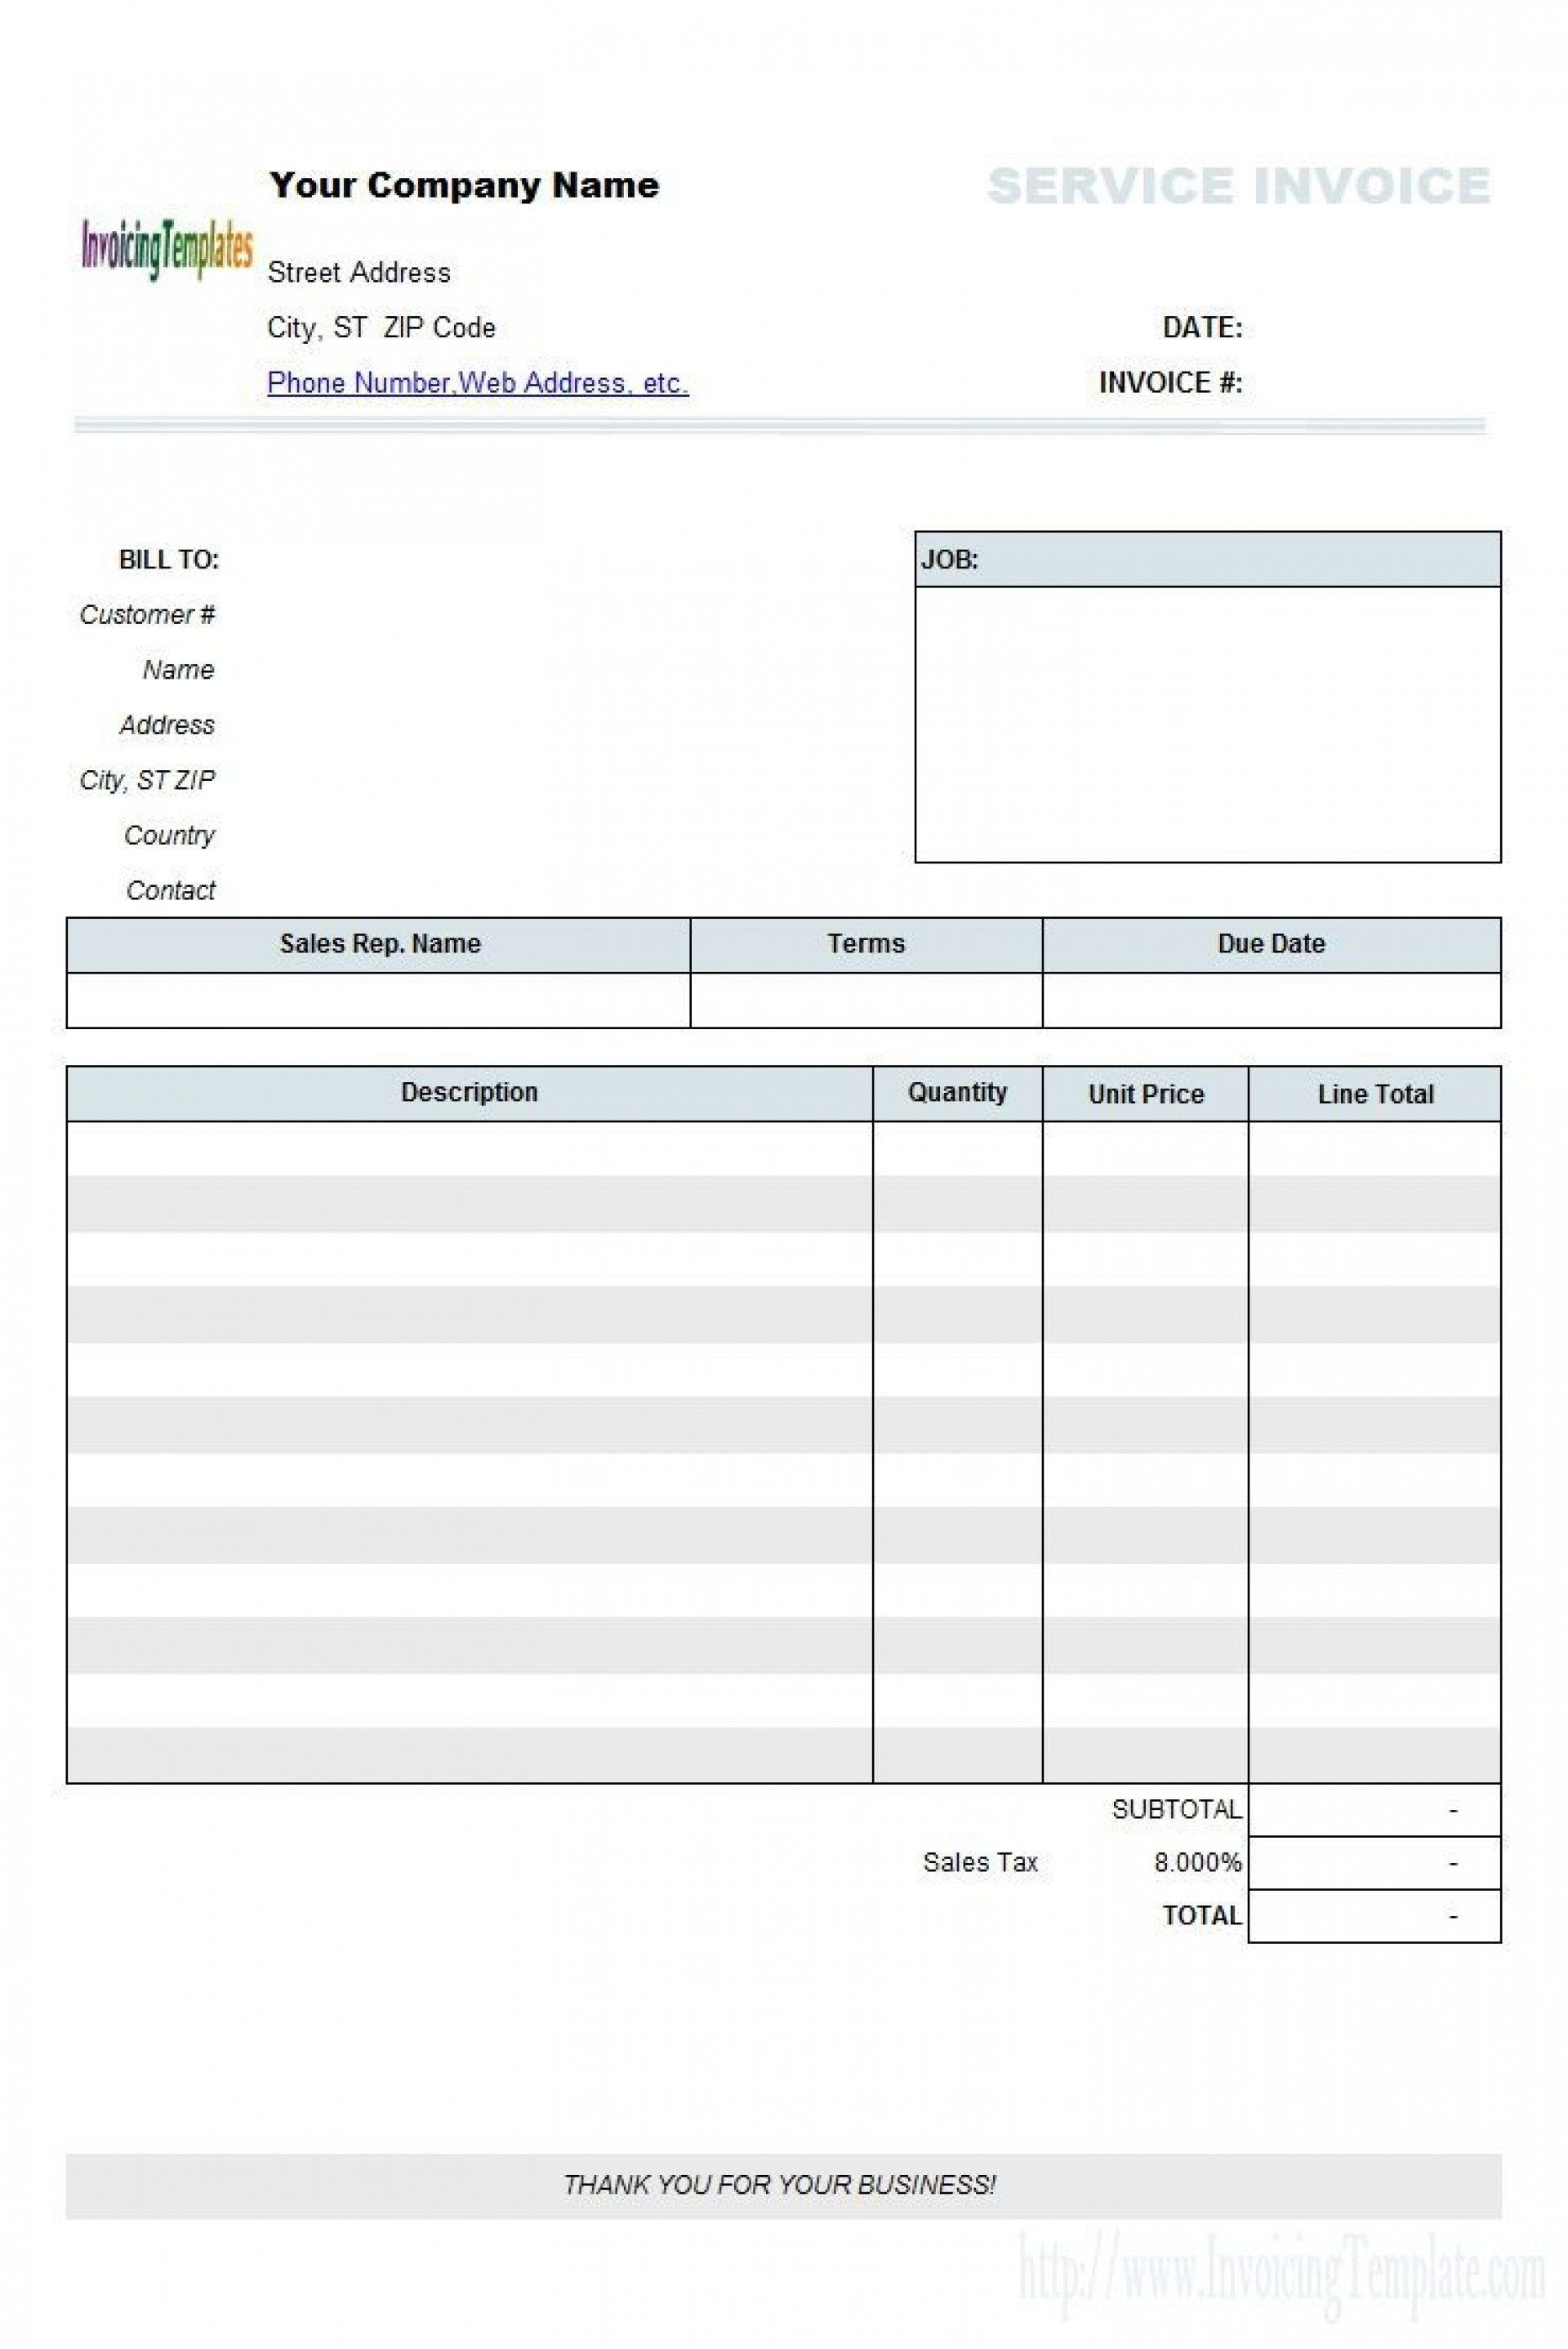 007 Marvelou Free Tax Invoice Template Excel South Africa Photo Full